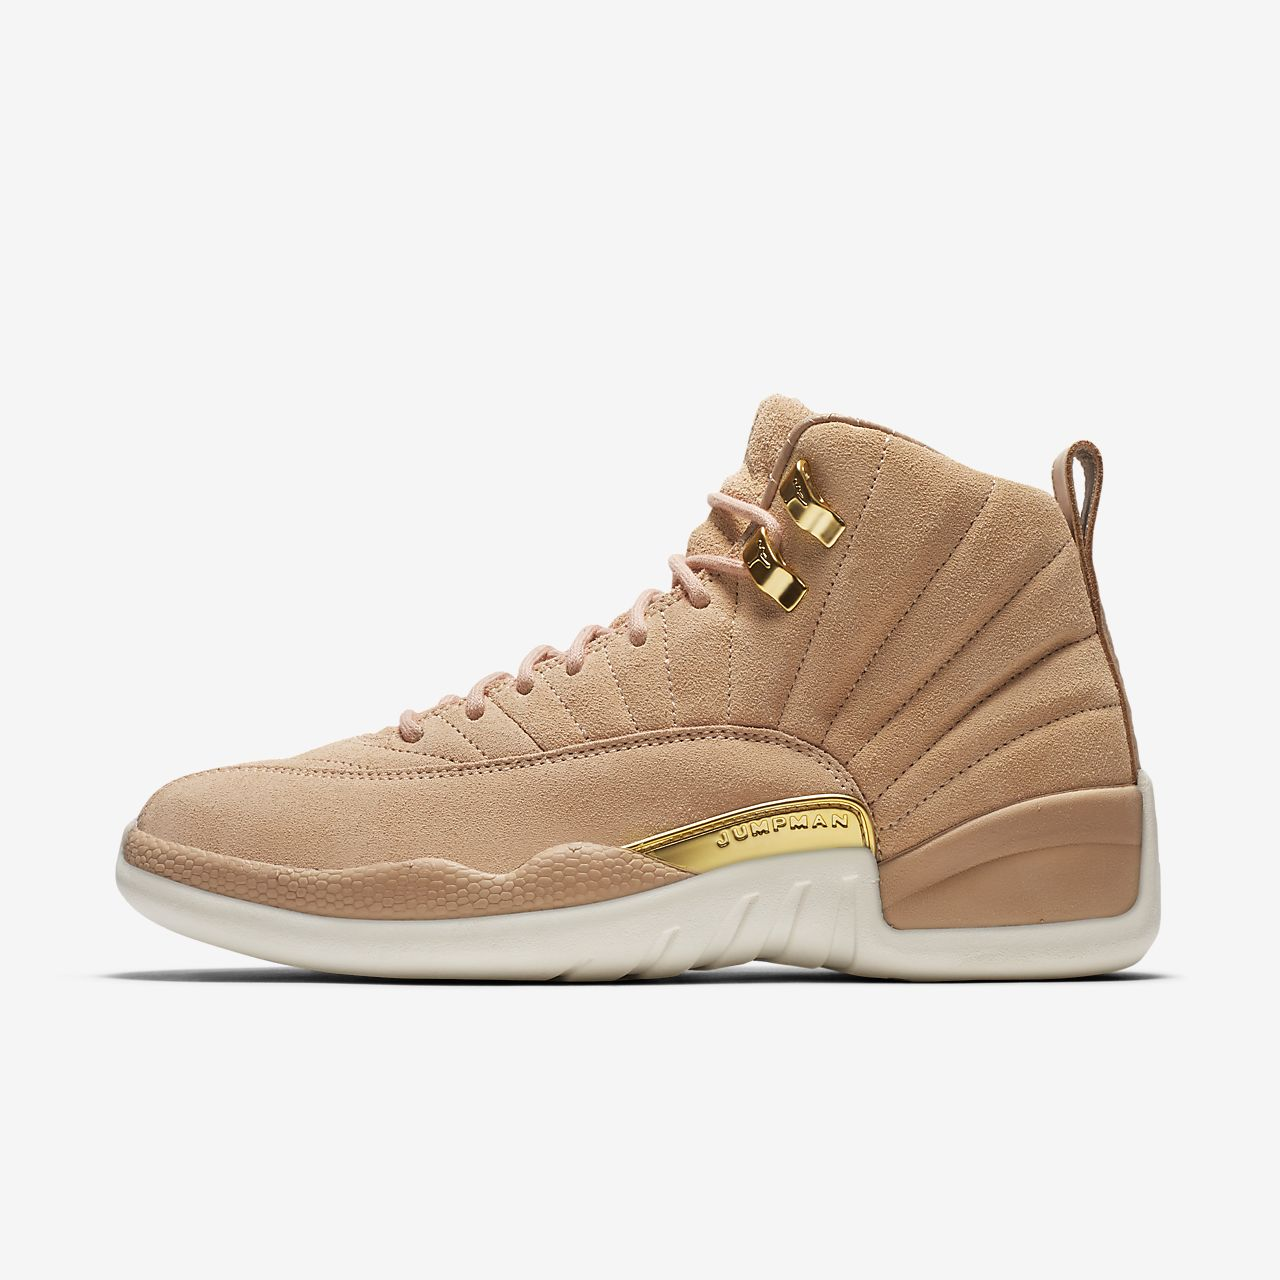 low priced b4837 ea19f Air Jordan 12 Retro